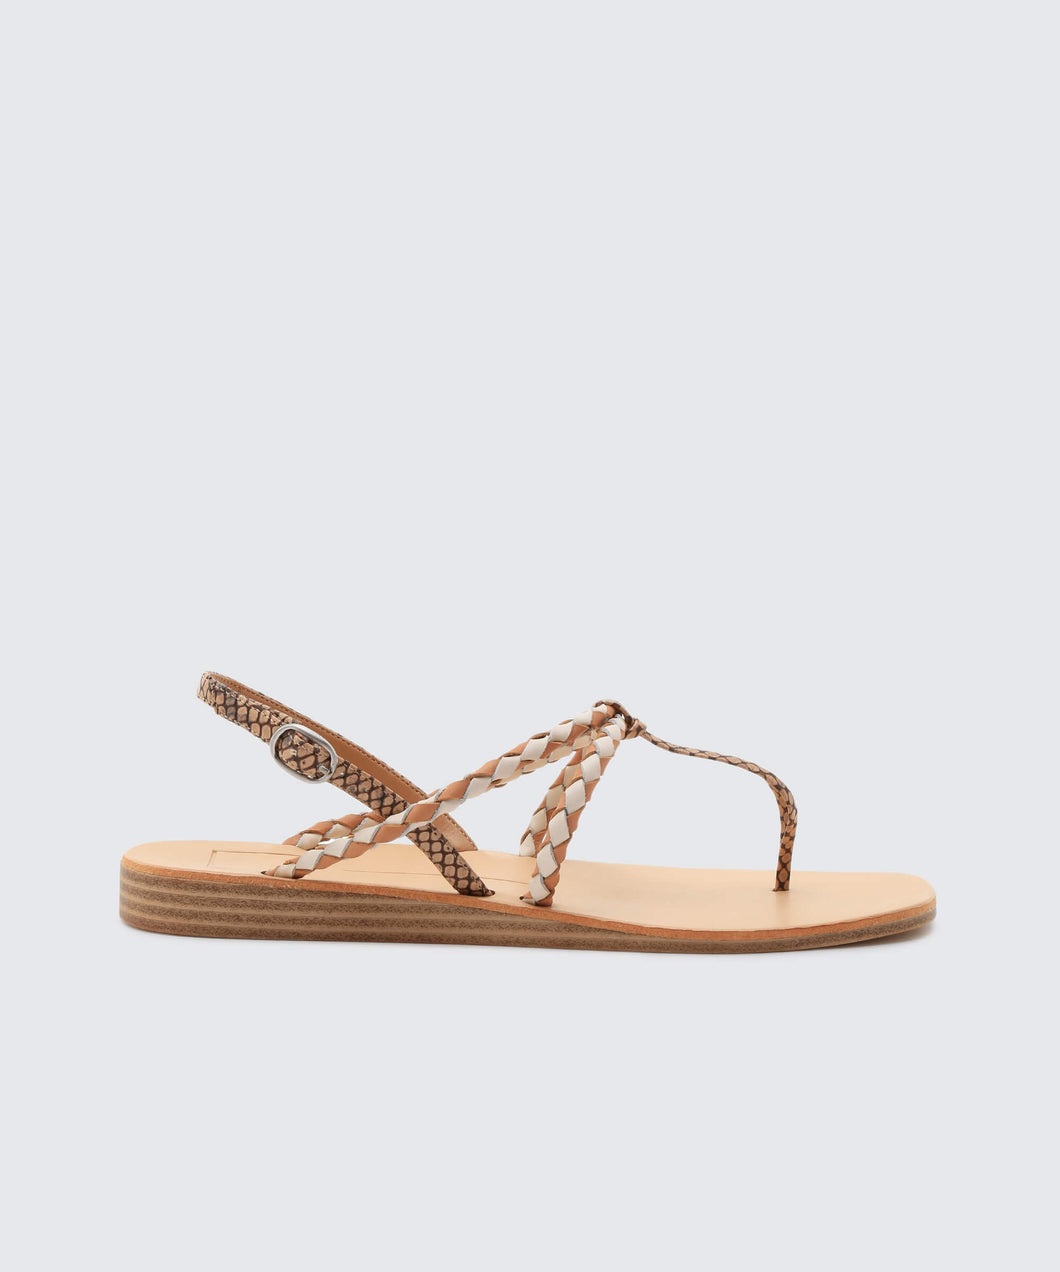 CREE SANDALS IN BROWN SNAKE -   Dolce Vita